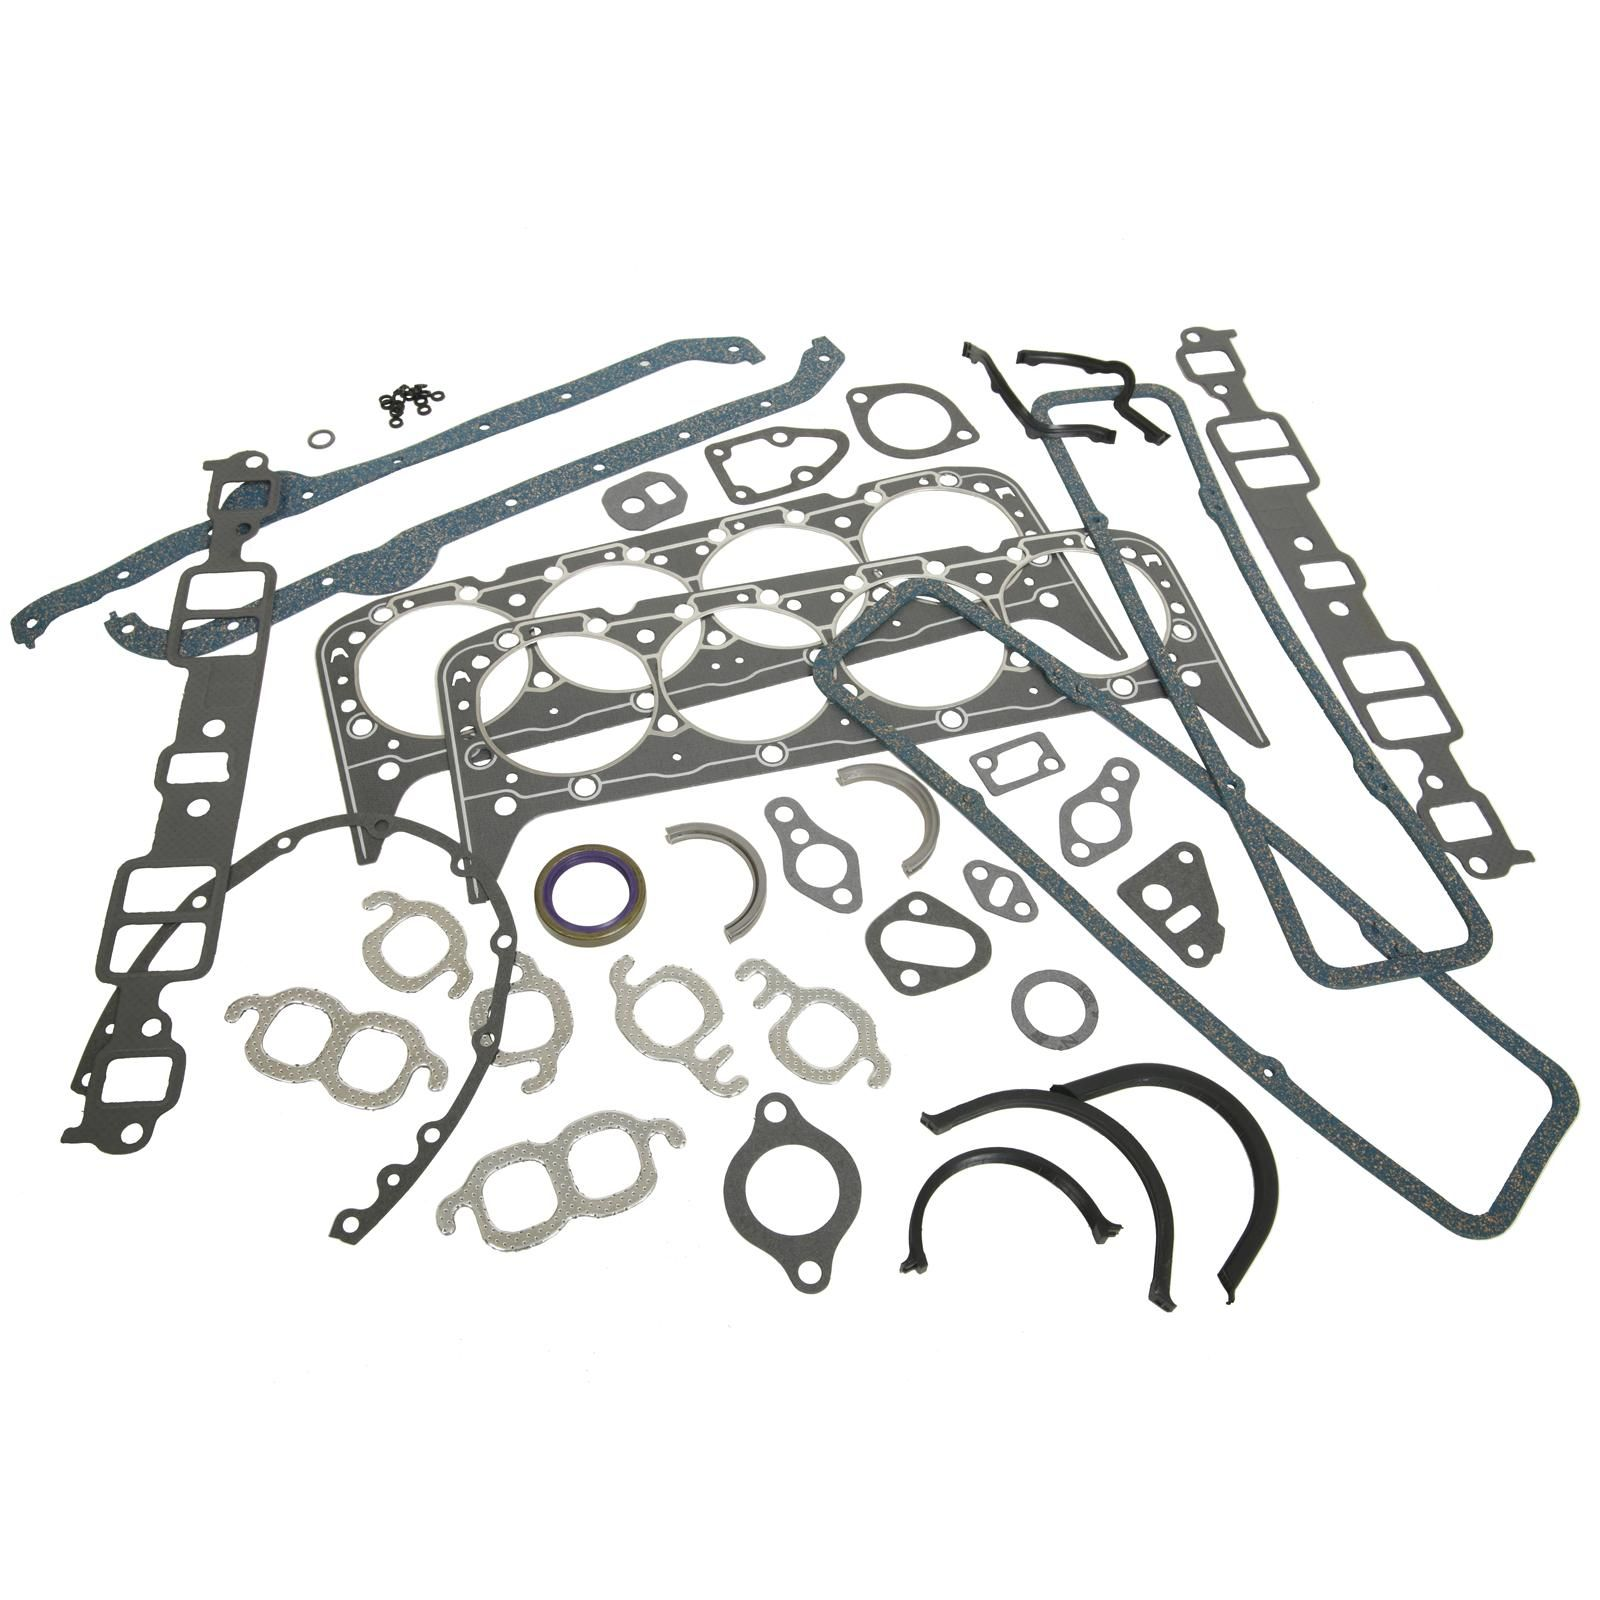 Chevy 305 Engine Rebuild Kits